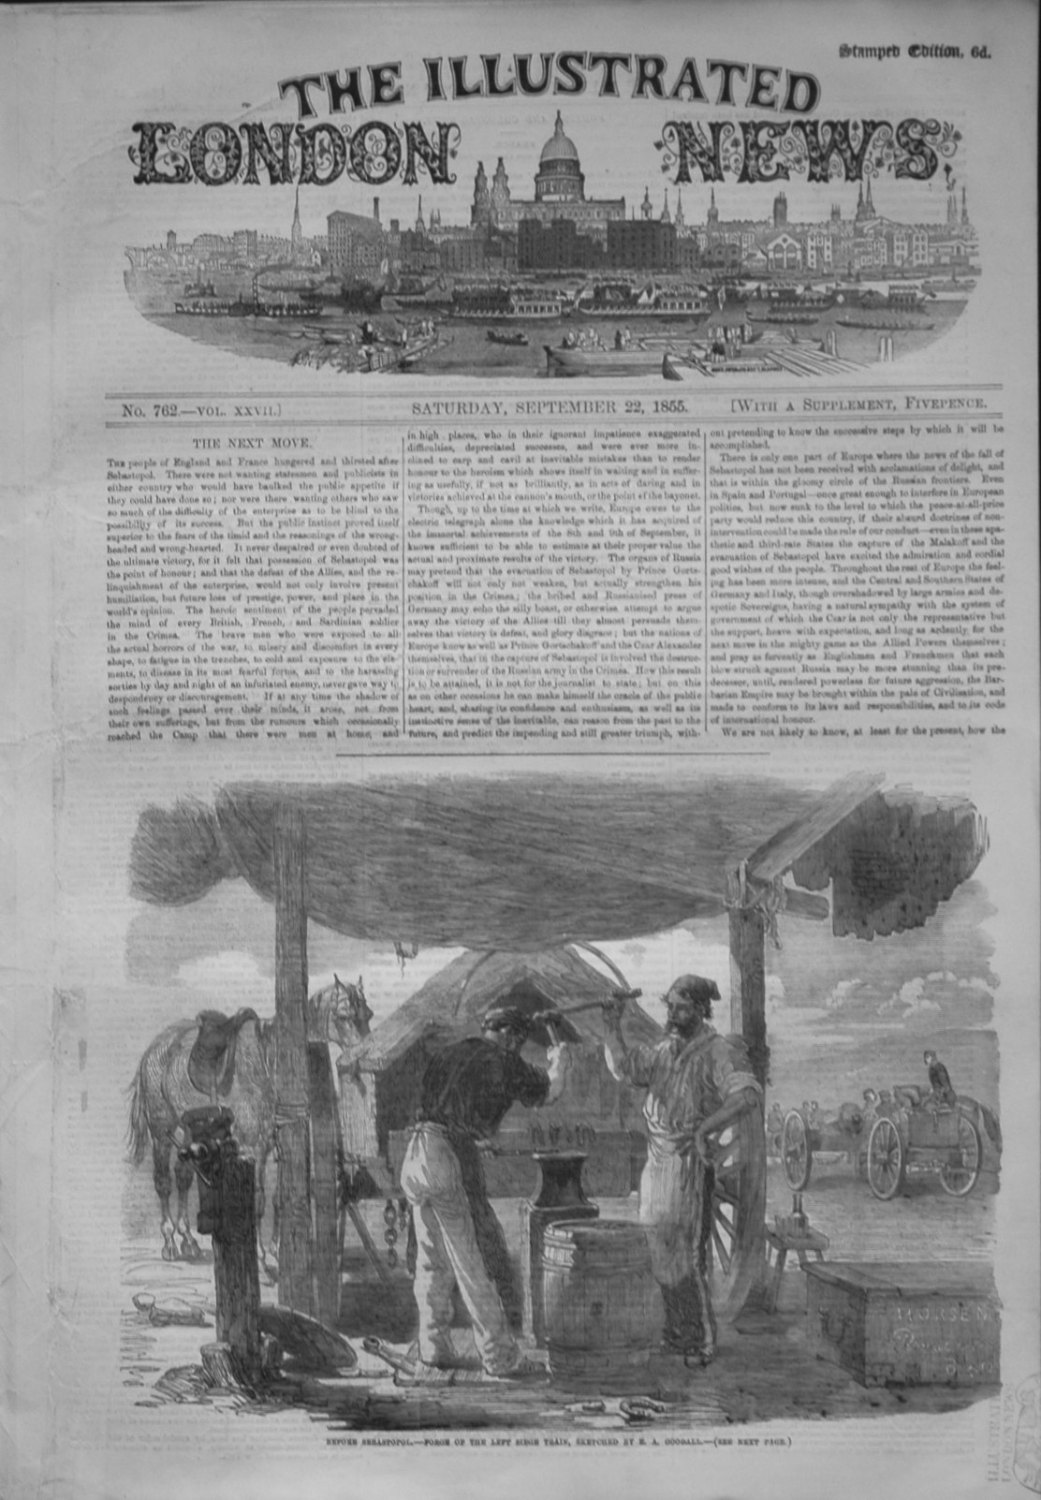 Illustrated London News Sept 22nd 1855.